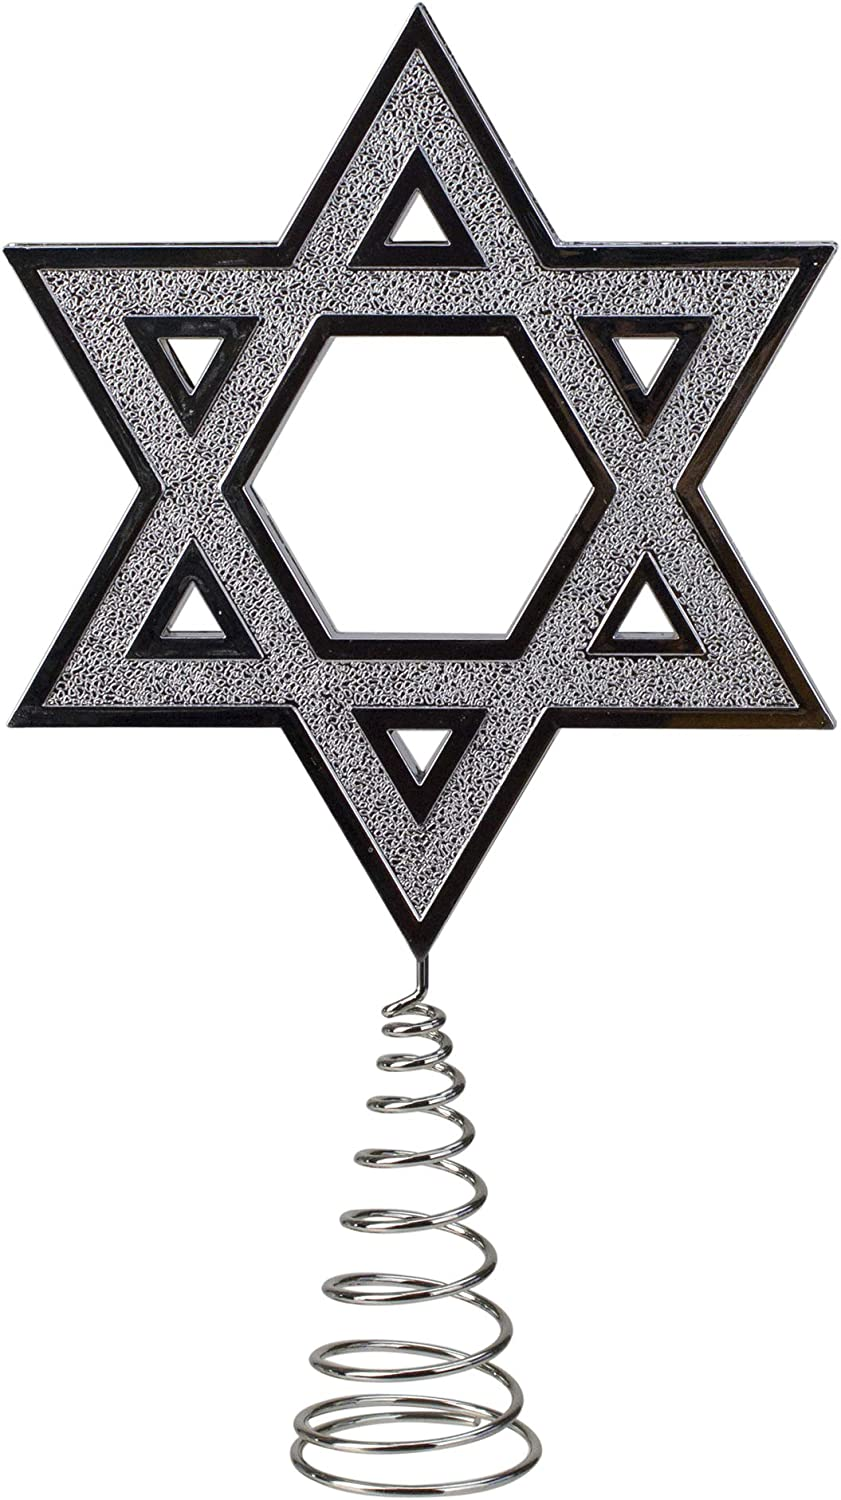 "Kurt Adler 9.5"" Silver Star of David Hanukkah Holiday Tree Topper"